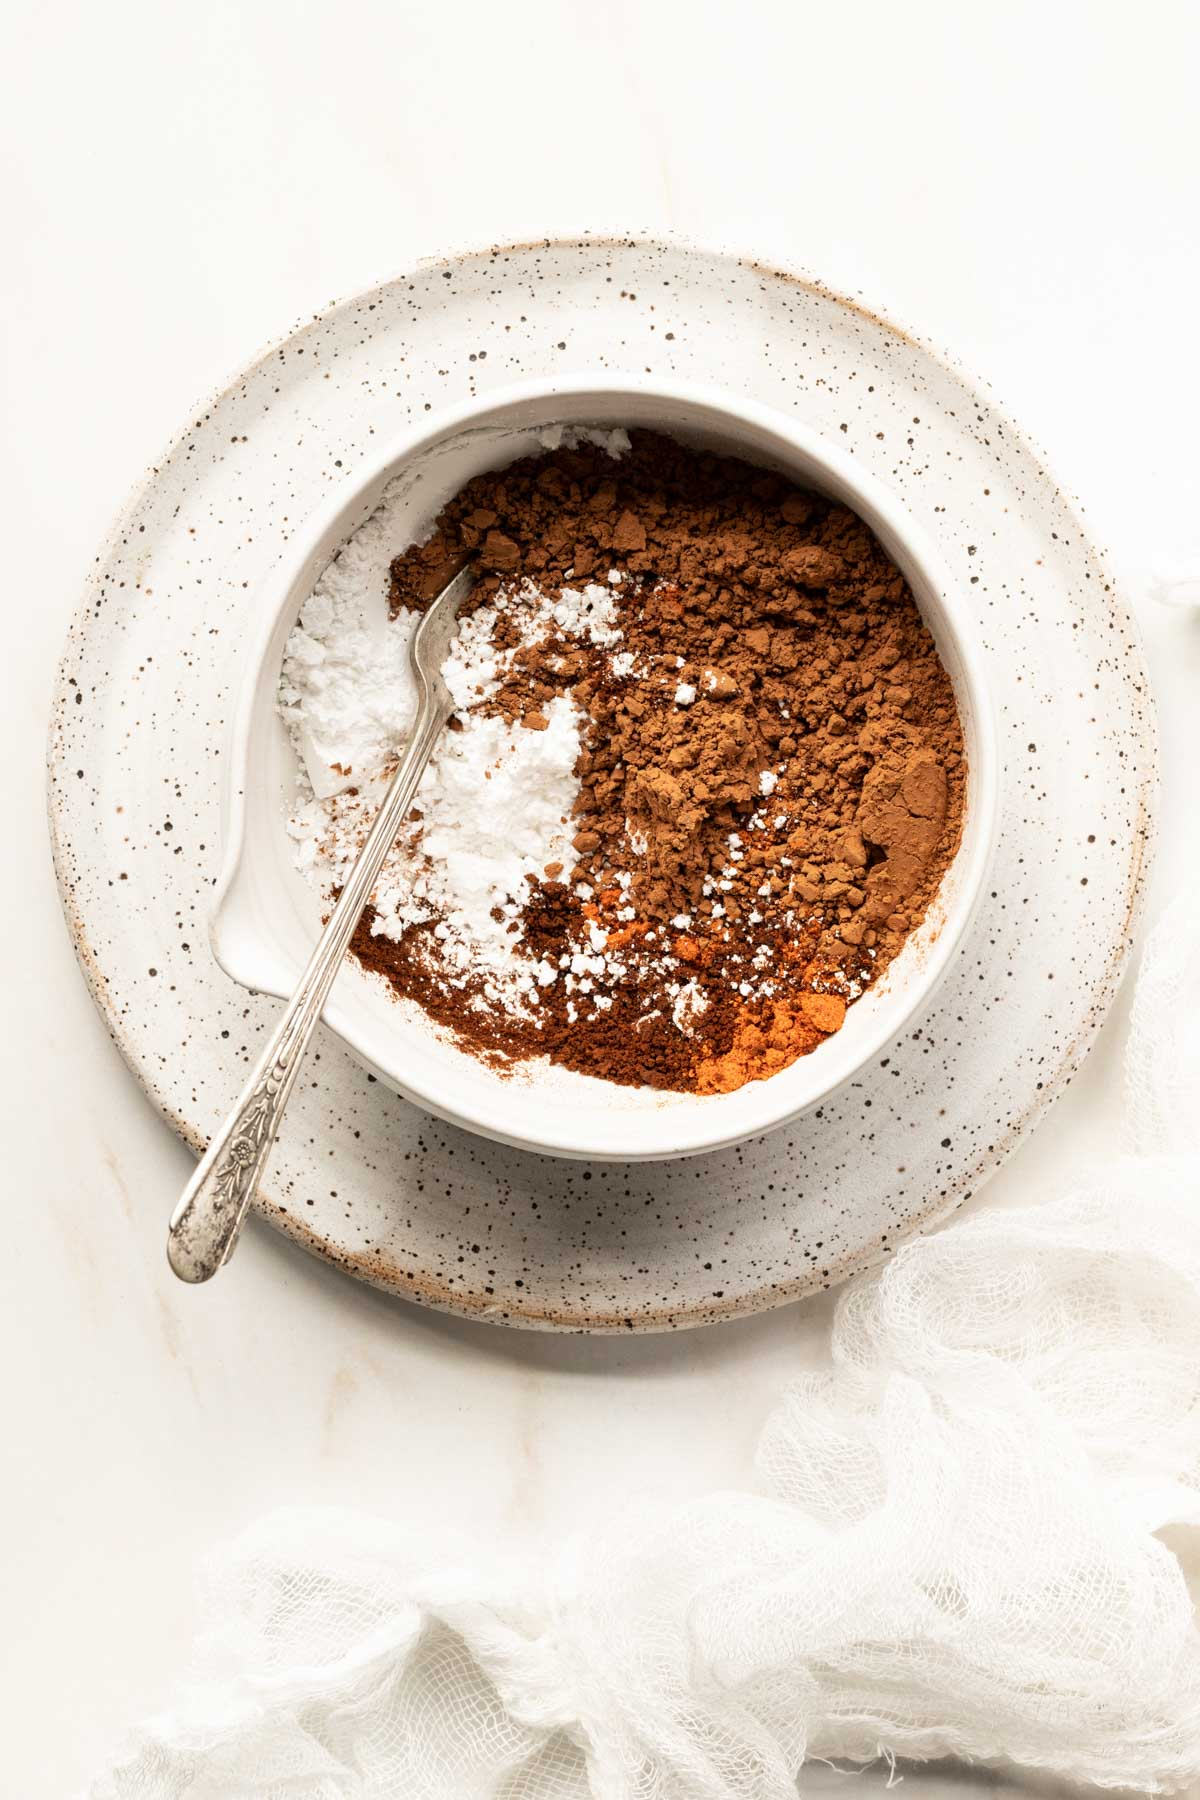 Cocoa powder and powdered sugar in a clay bowl with a spoon